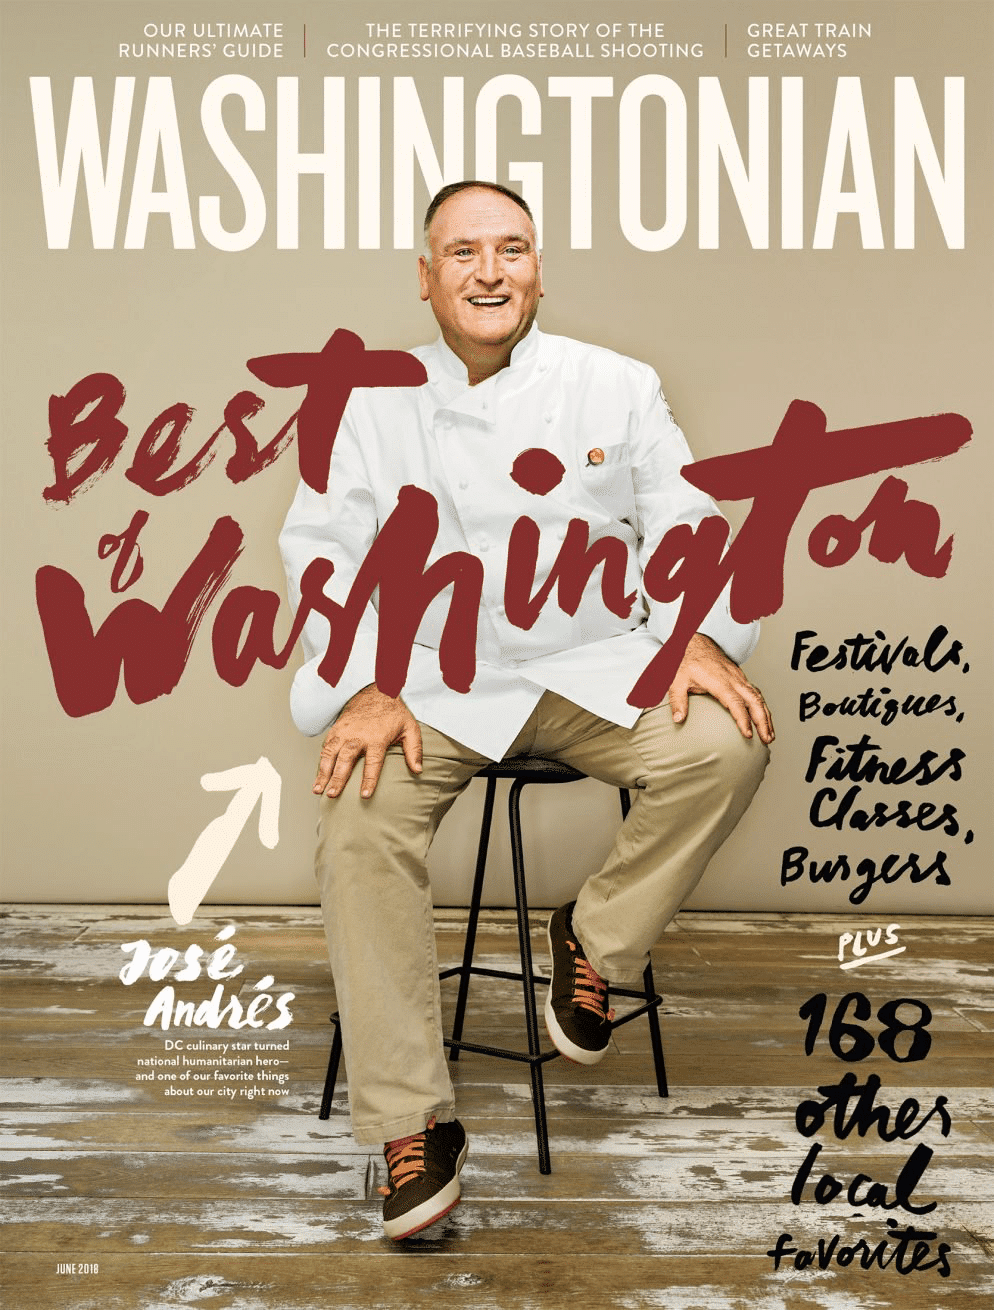 image 1 - Dr. Larson named a Top Orthodontist by Washingtonian